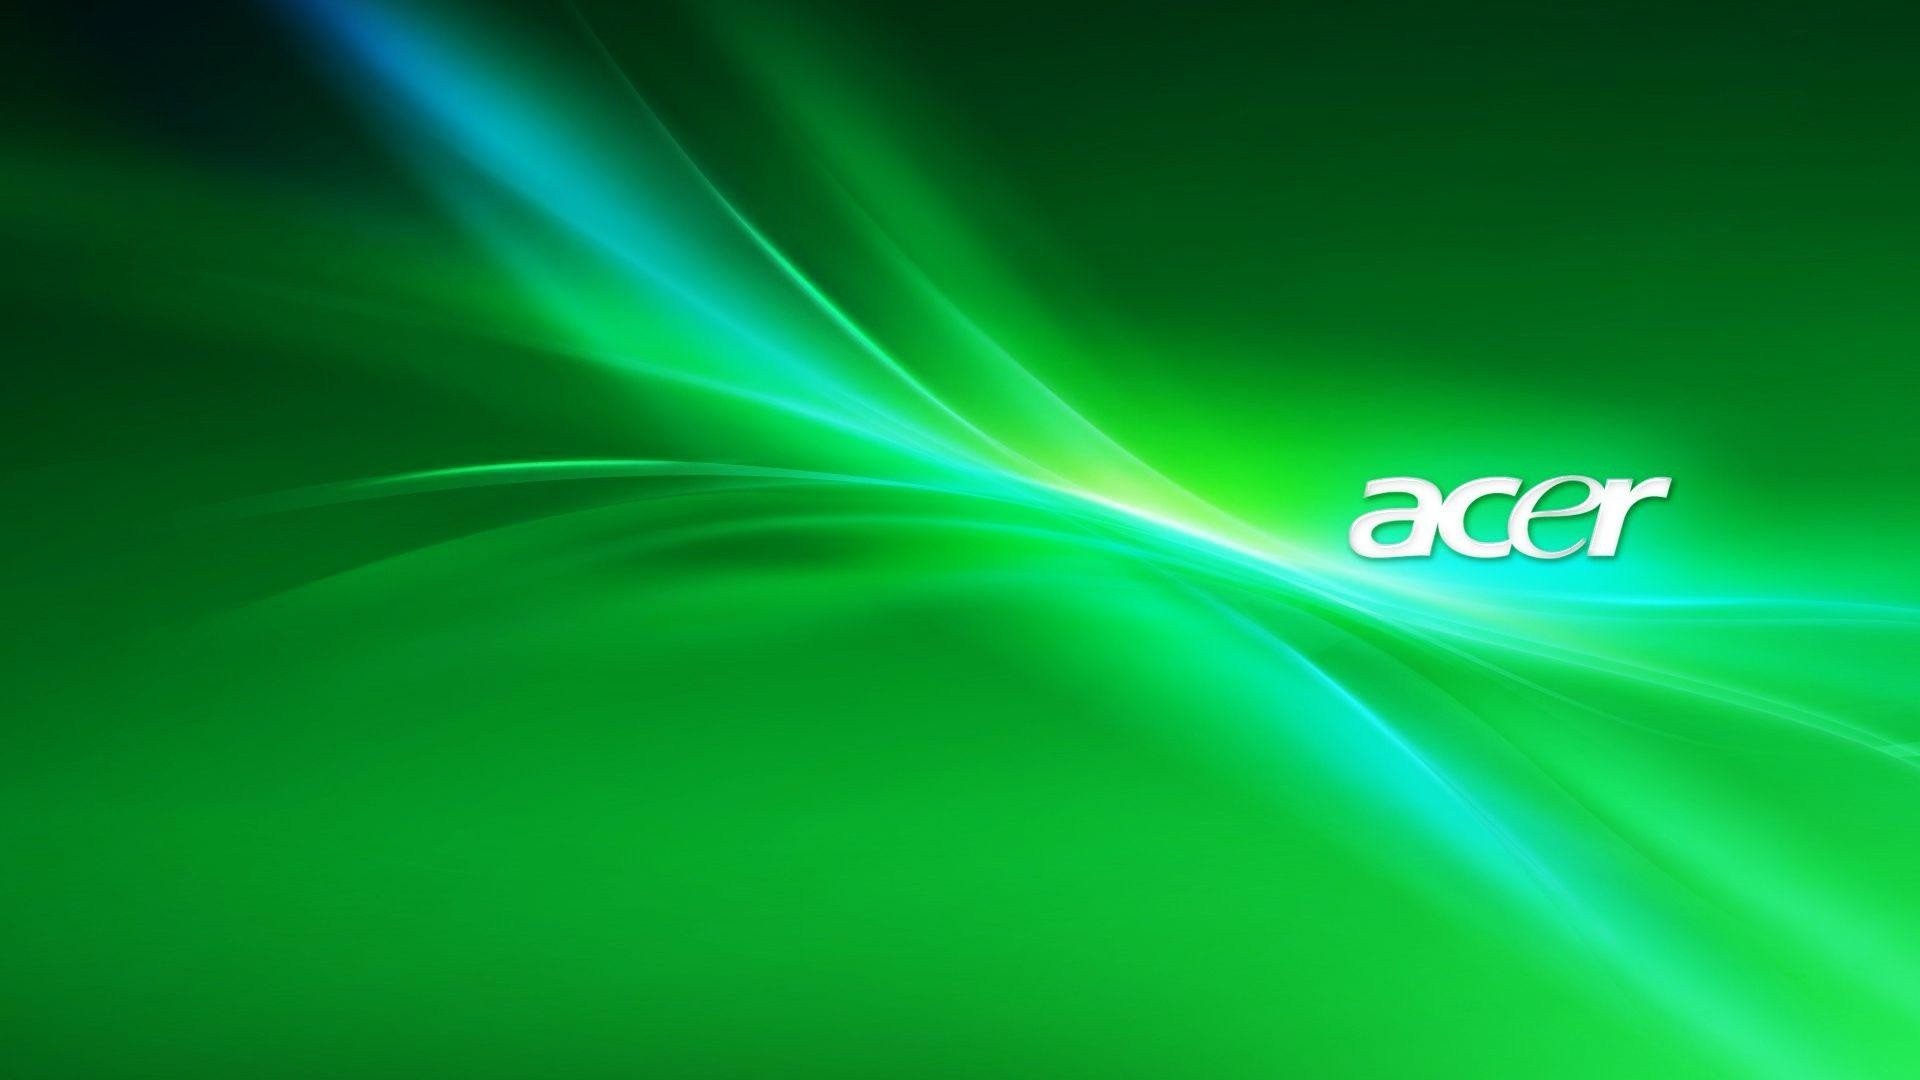 1920x1080 Acer Wallpapers For Windows 7 Wallpaper 8845